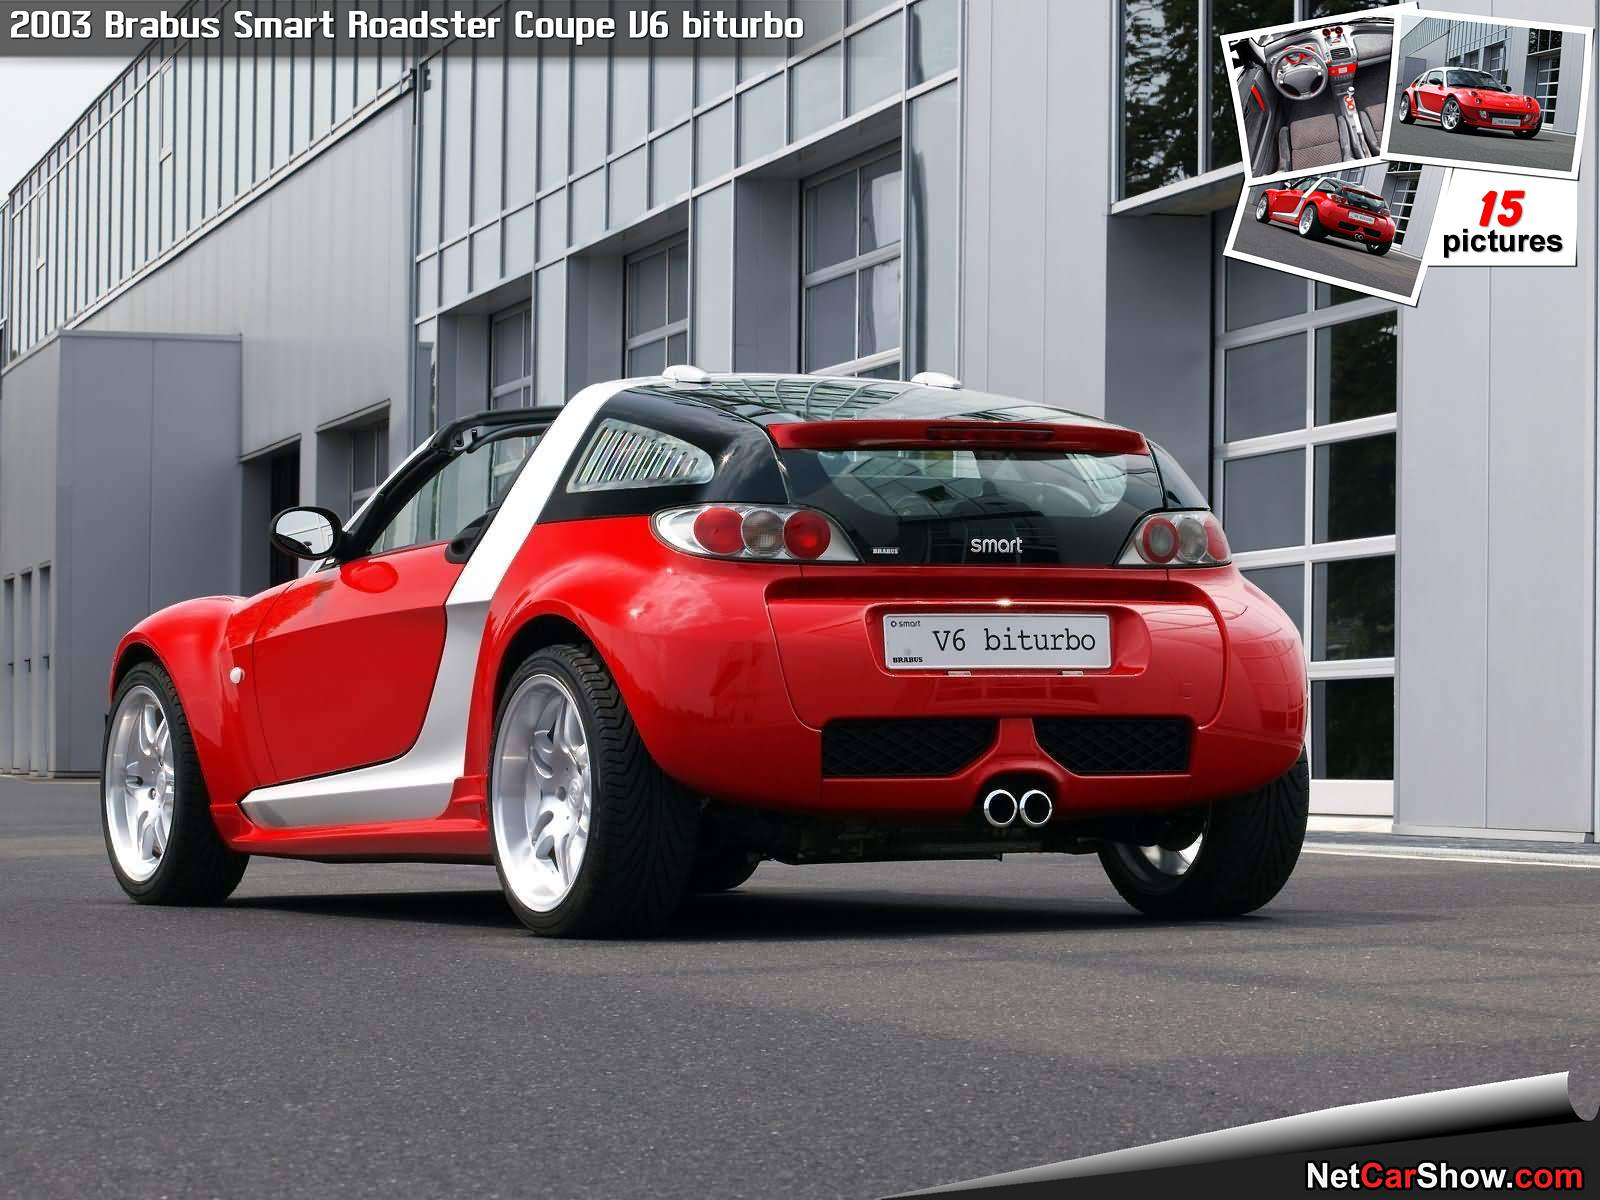 Brabus-Smart_Roadster_Coupe_V6_biturbo-2003-1600-0d Interesting Info About How to Make A Car Louder with Extraordinary Images Cars Review